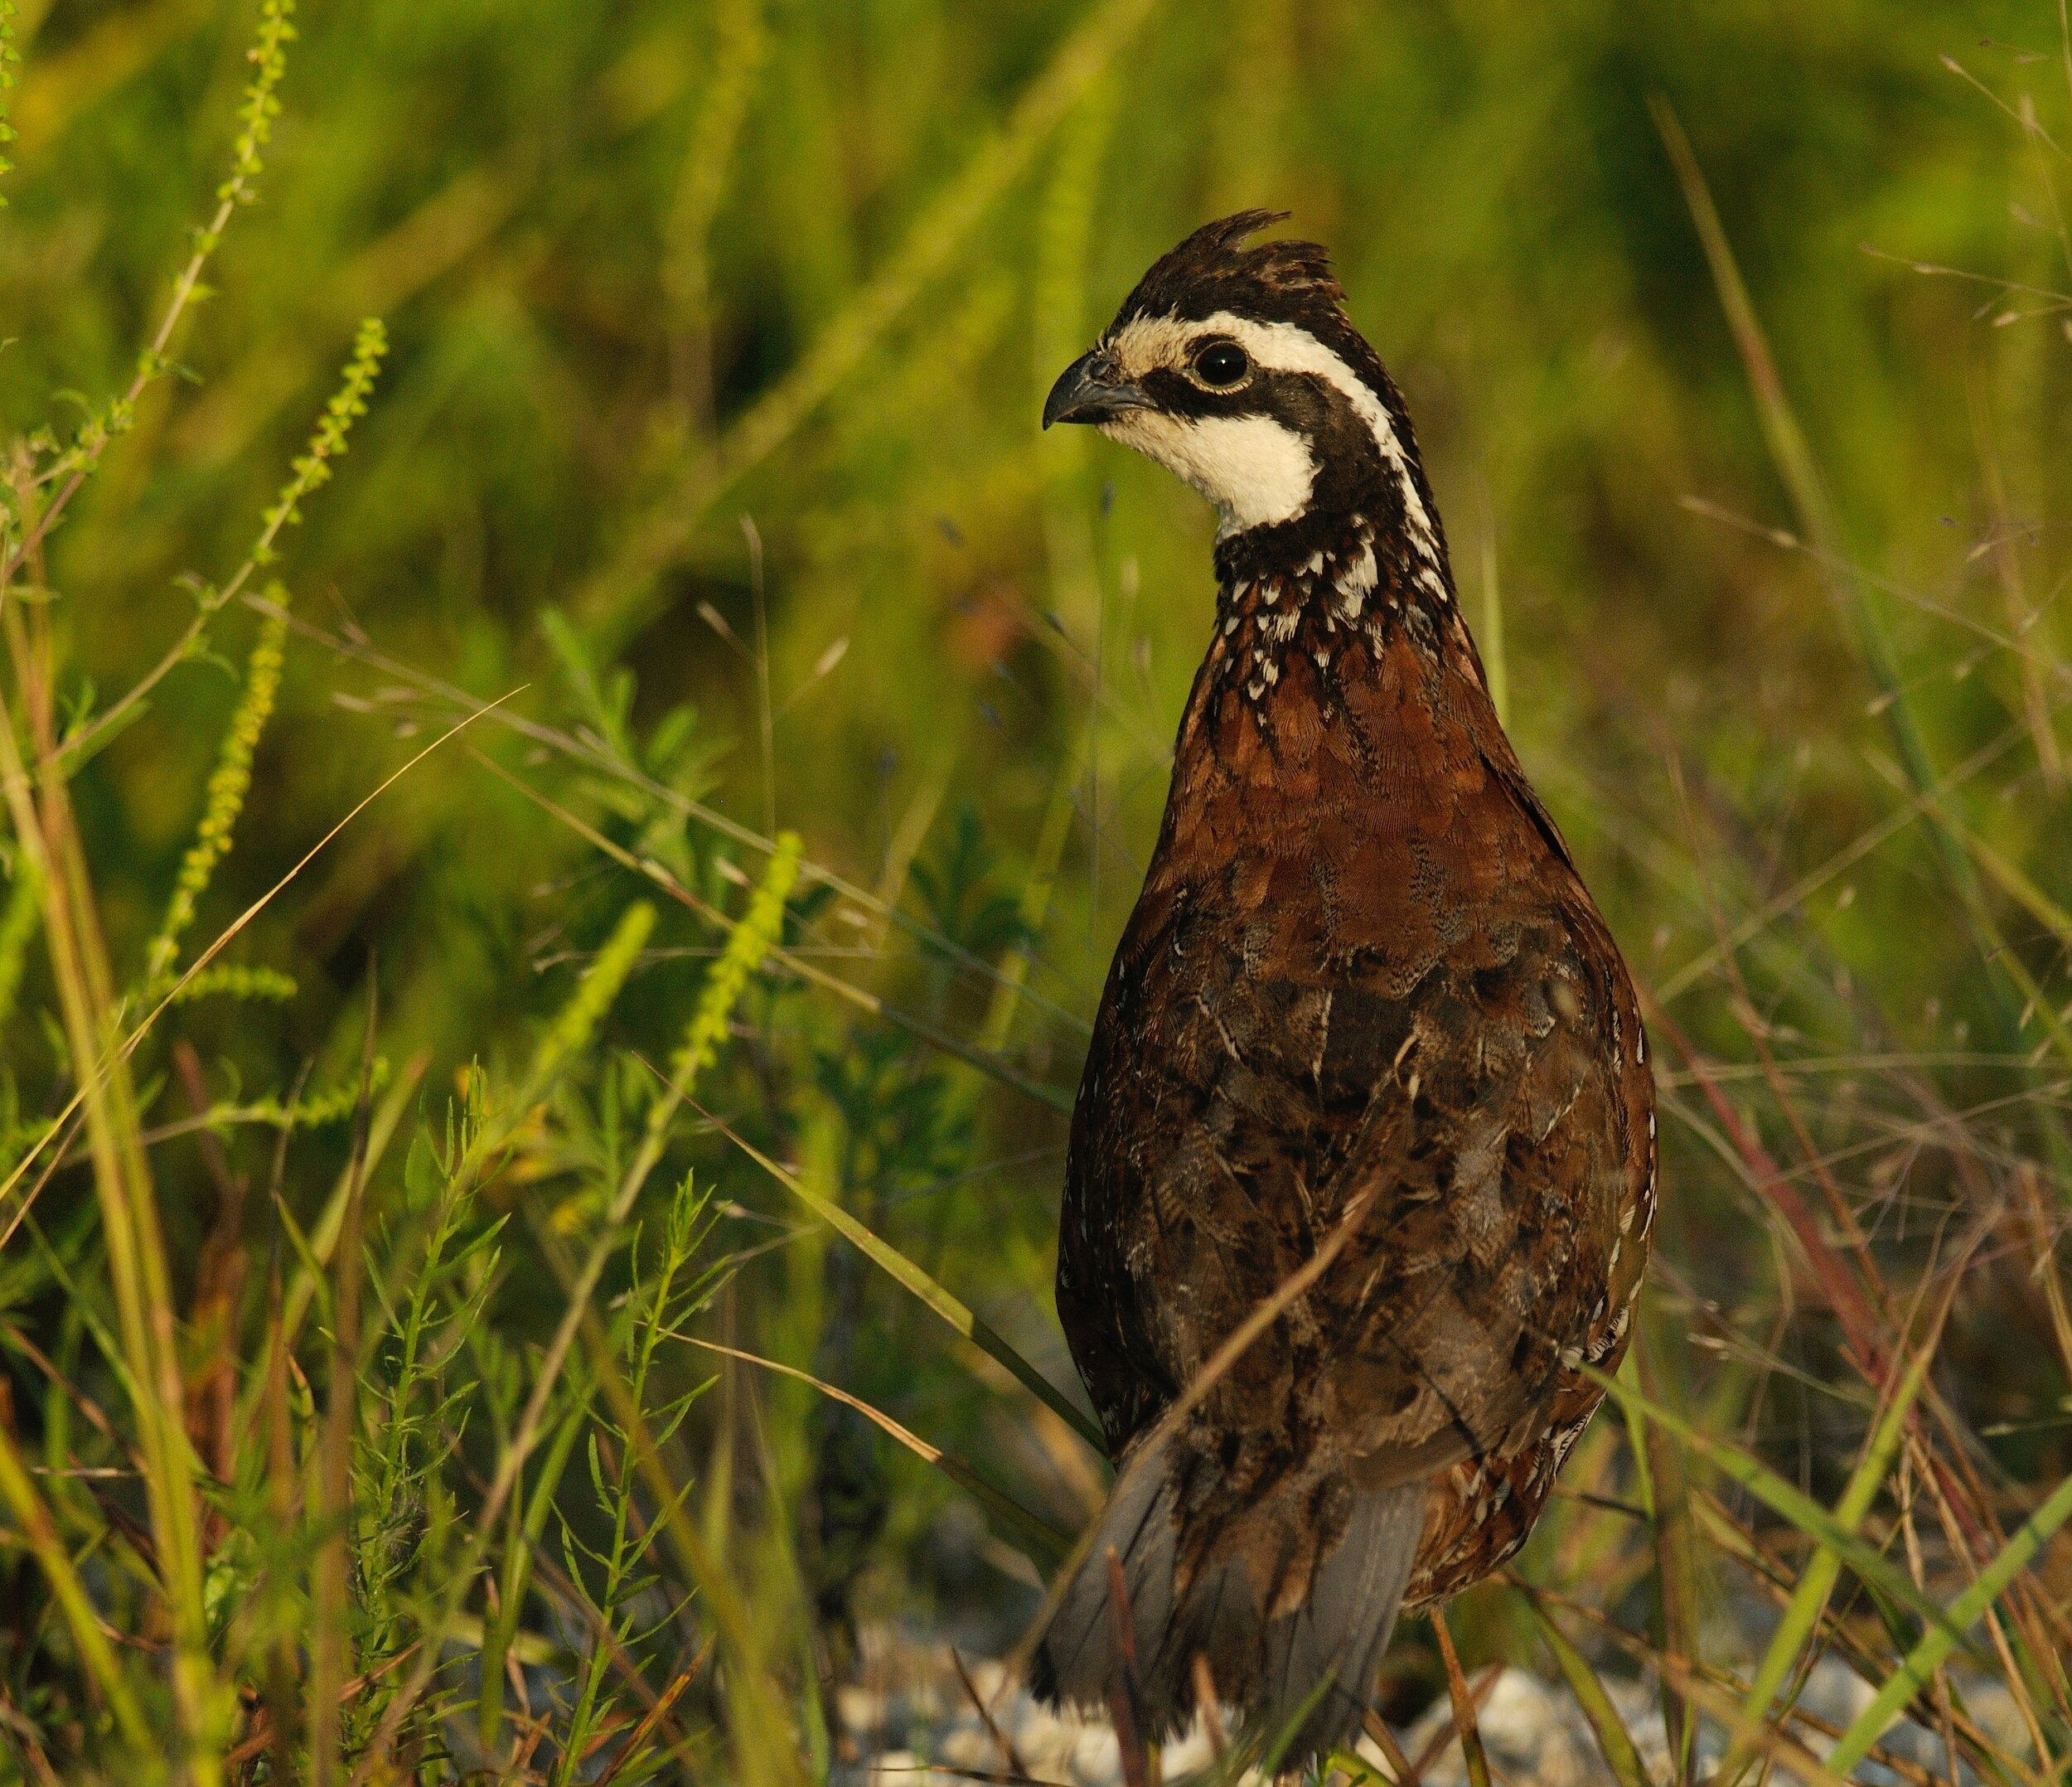 Photo: Tom Dunkerton  Florida panhandle landowners who lost huge timber crops may want to incorporate quail into their timber replanting strategy.